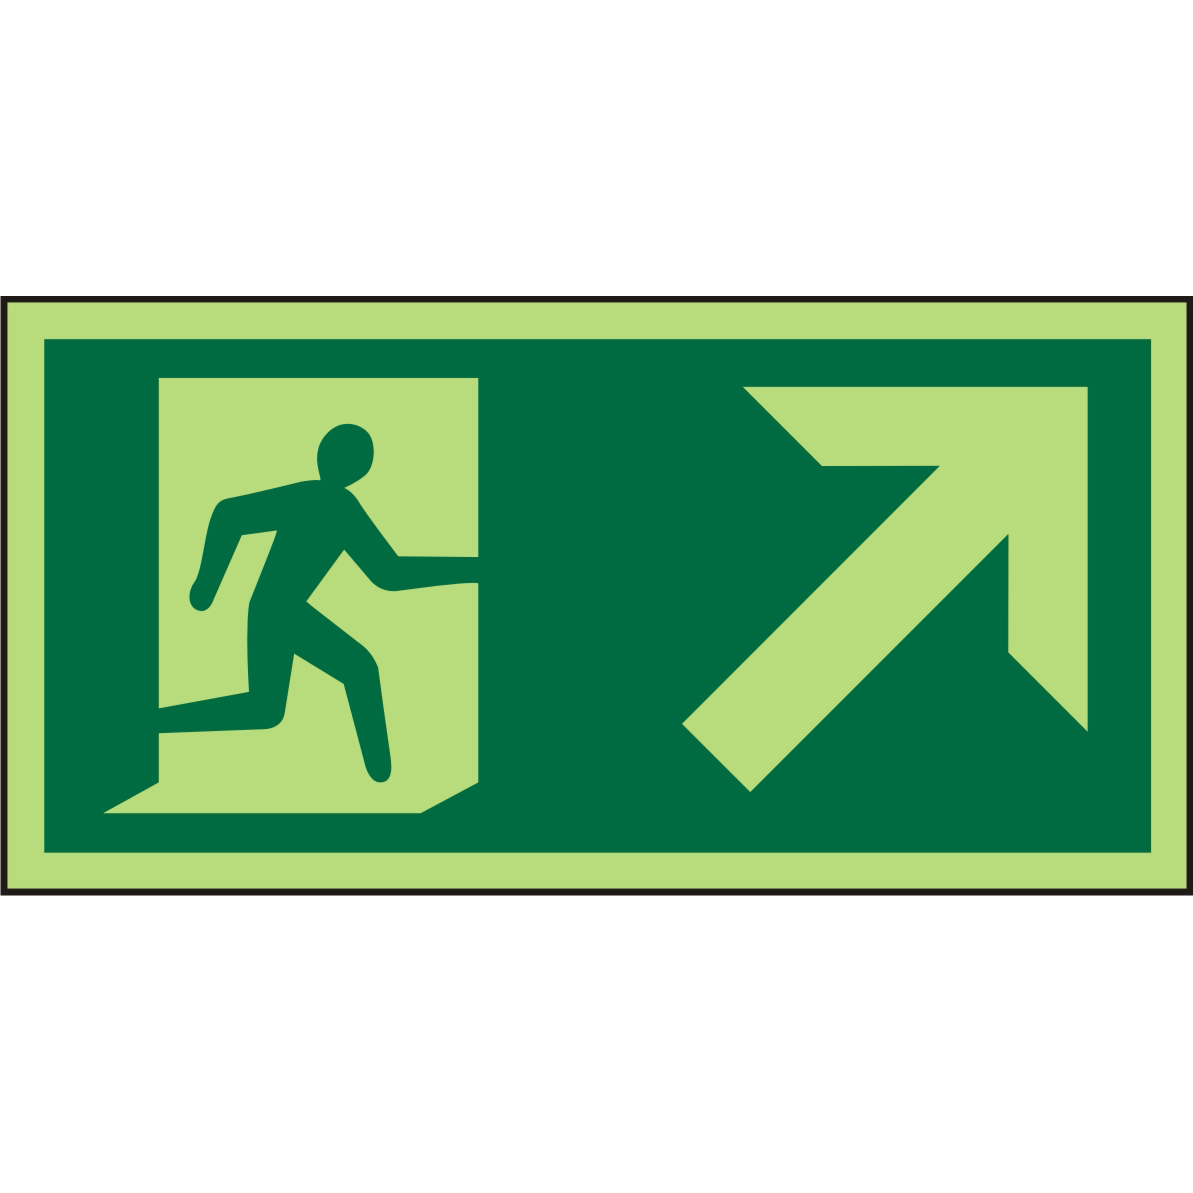 Photolum Sign 300x150 1mm Man Running Right&Arrow tbrhc Ref PSP063SRP300x150 Up to 10 Day Leadtime